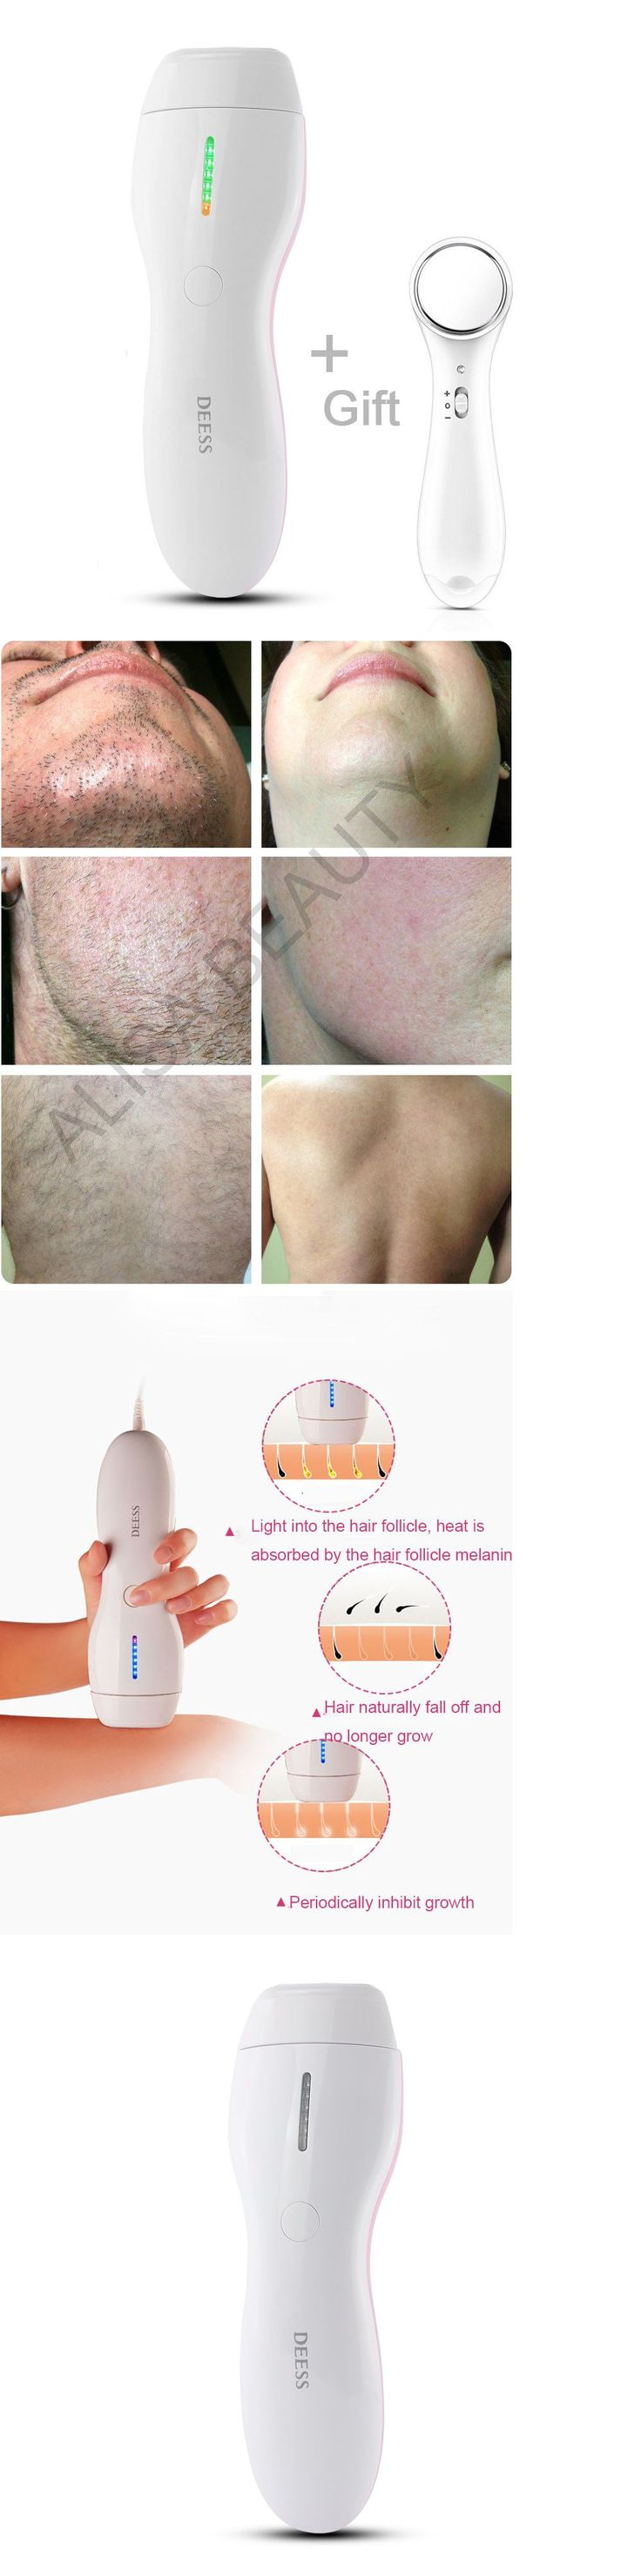 Laser Hair Removal and IPL: Deess Laser Hair Removal System Ipl Best Hair Removal 350,000 Light Pulses -> BUY IT NOW ONLY: $138 on eBay! #BestHairLaserRemoval